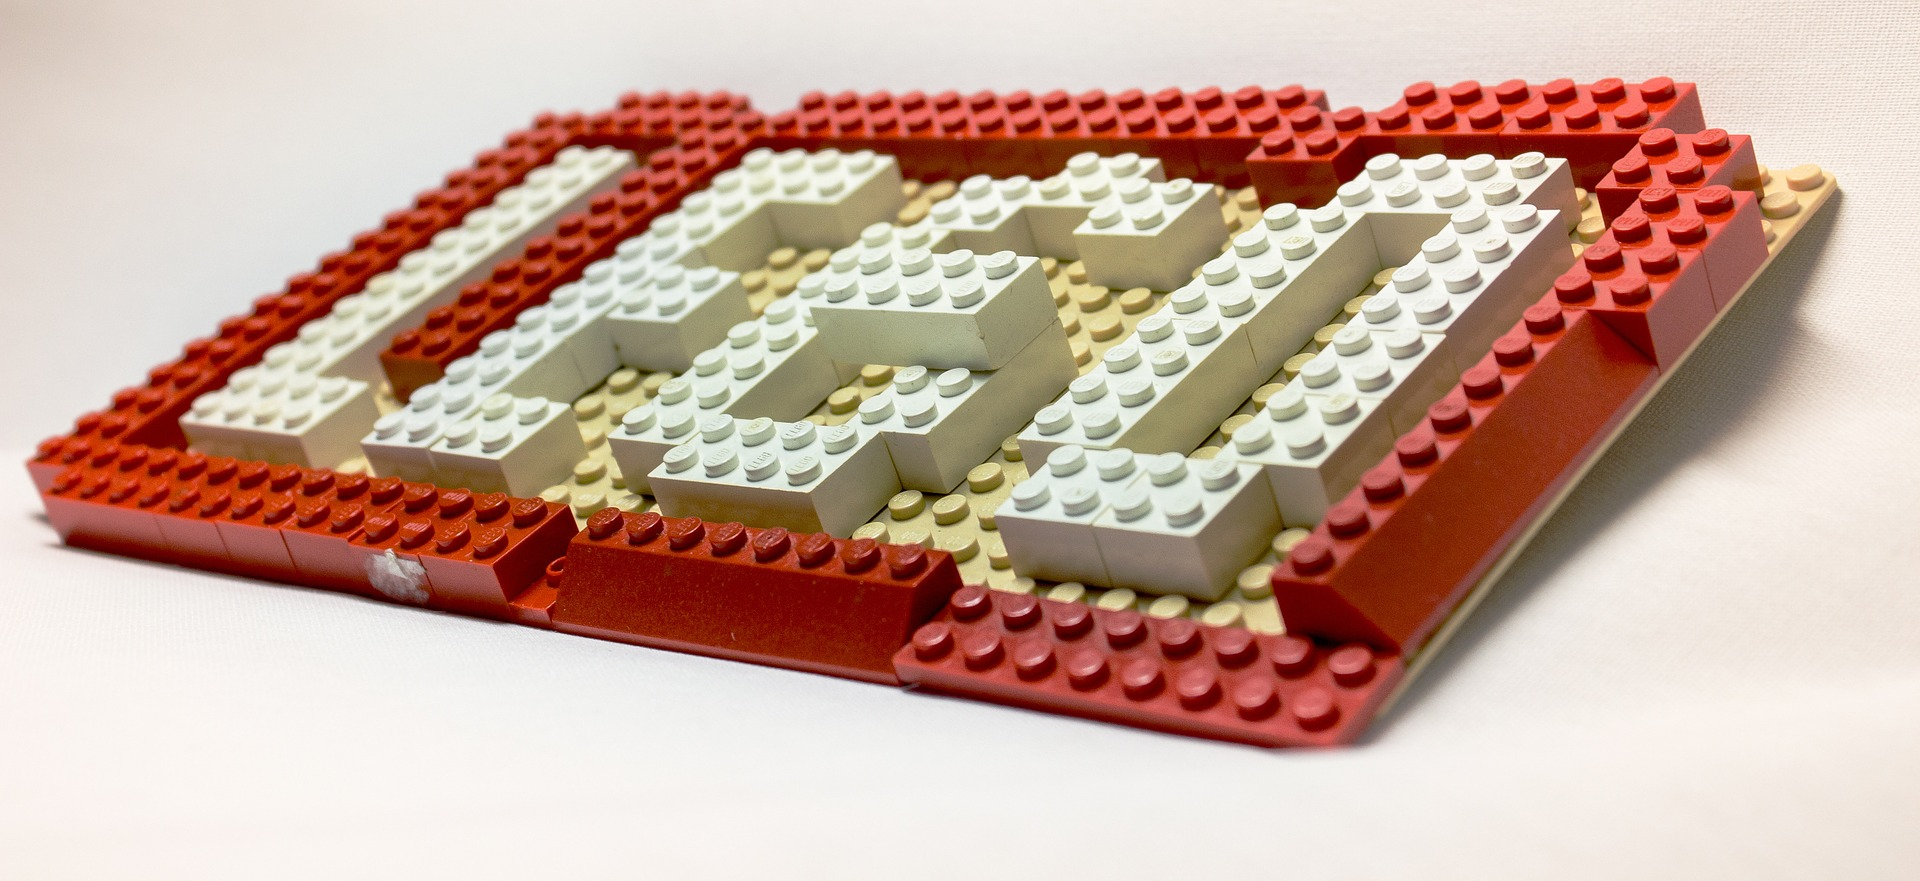 The LEGO logo made of LEGO bricks